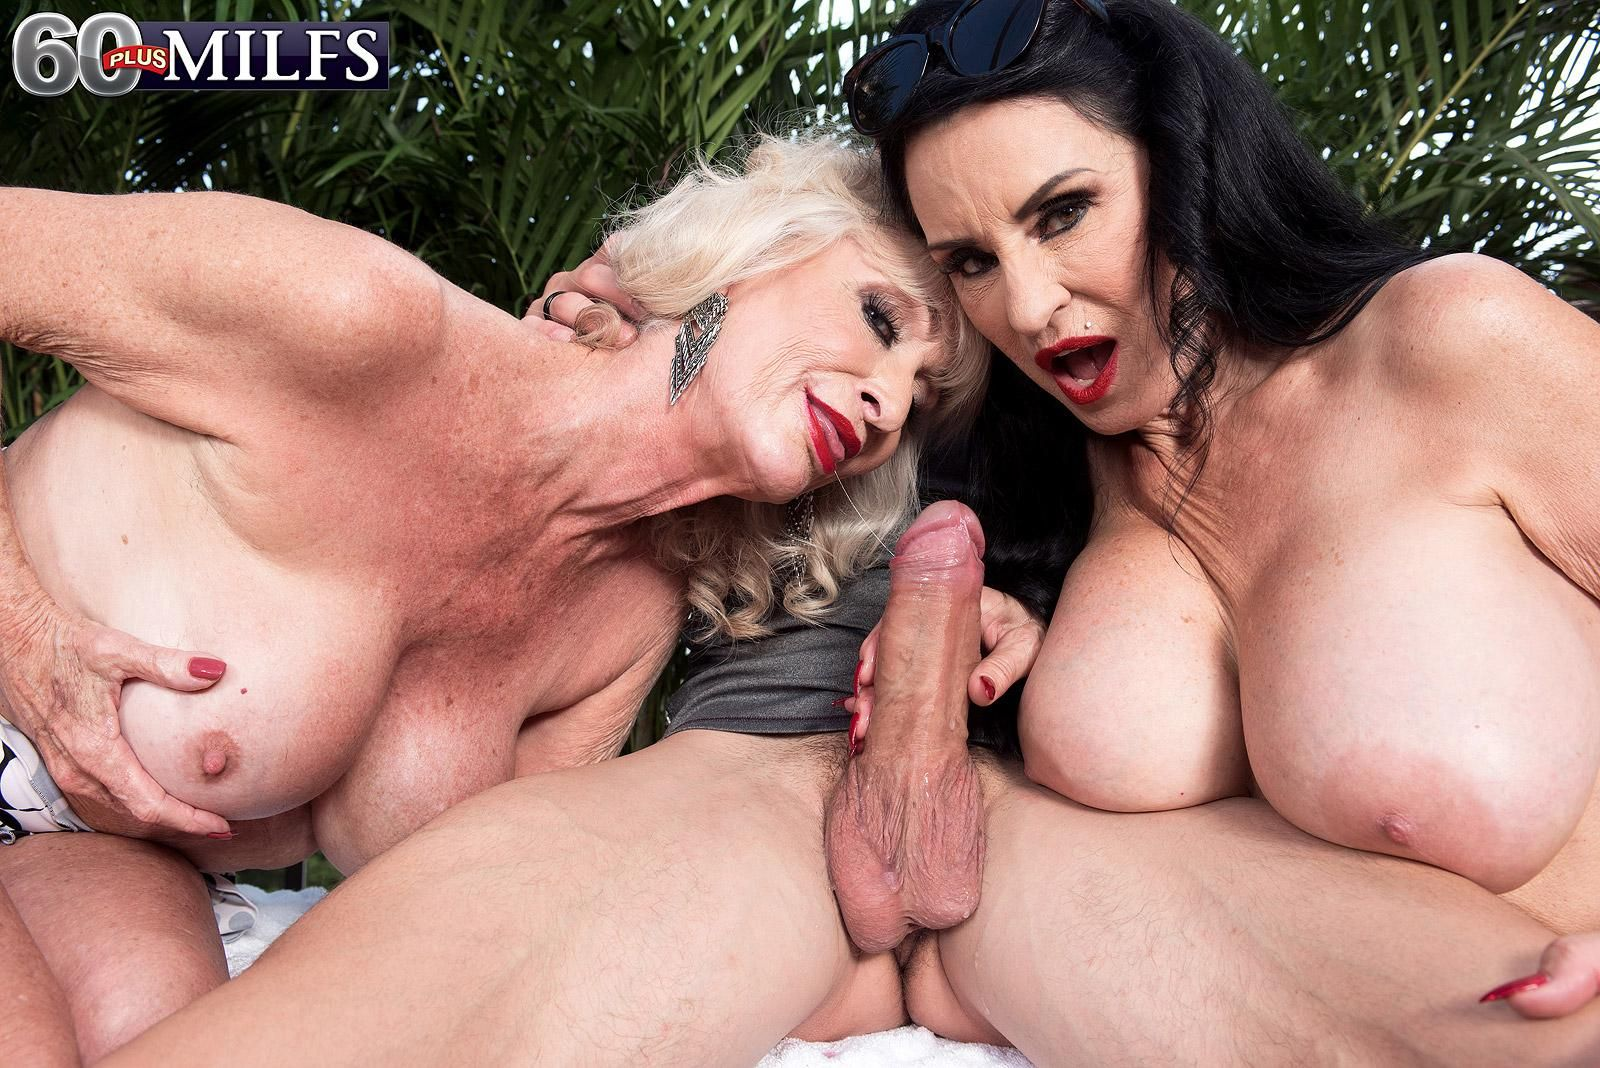 MILF Over 60 Rita Daniels and a Mature MILF jerk a cock together outdoors